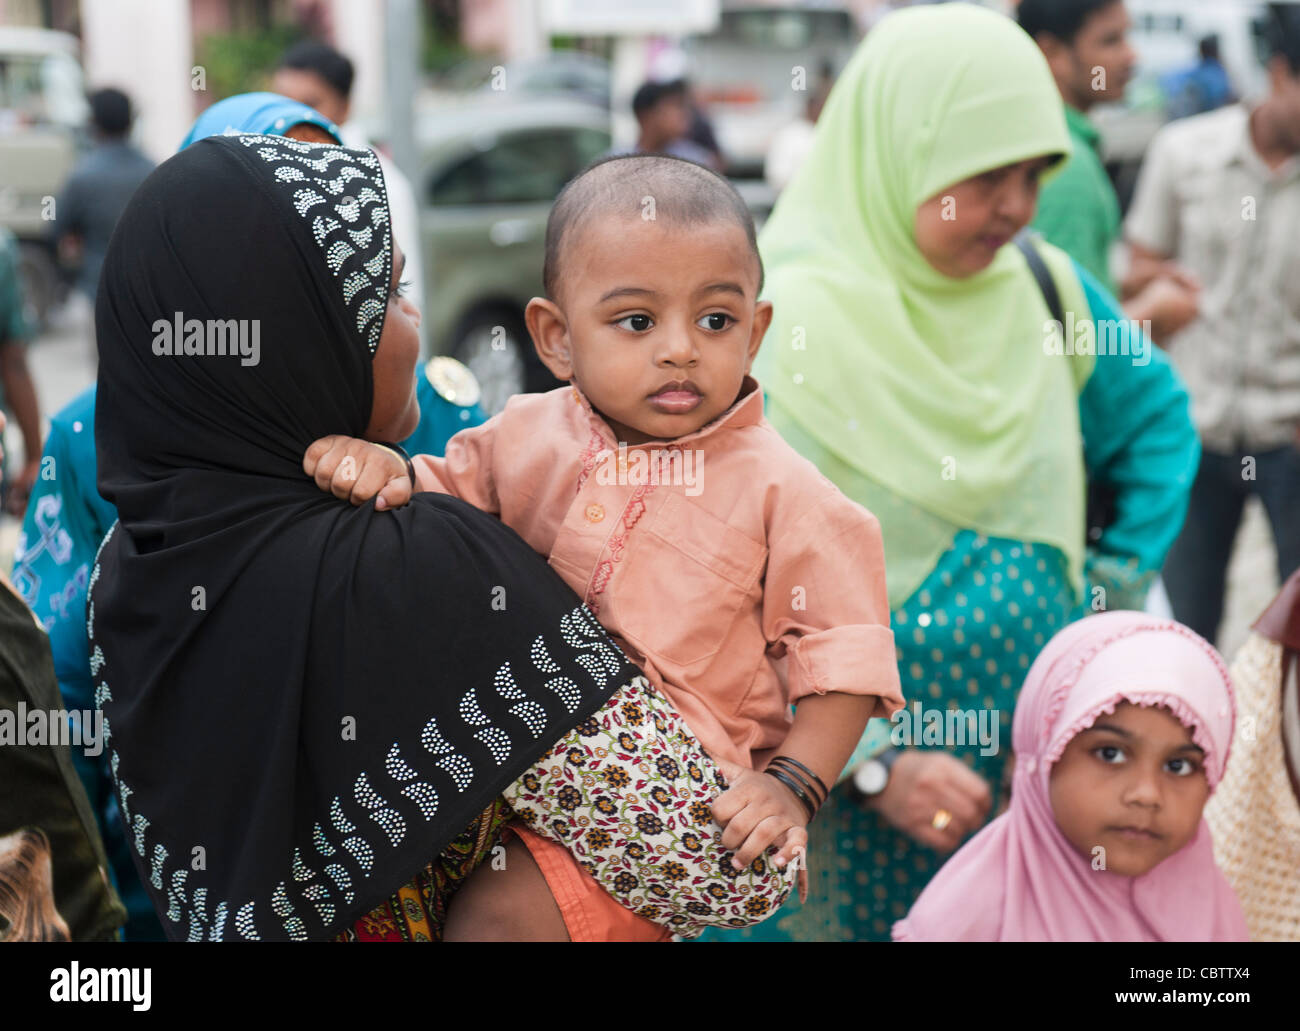 A woman carryin his baby boy, Little India, Singapore - Stock Image